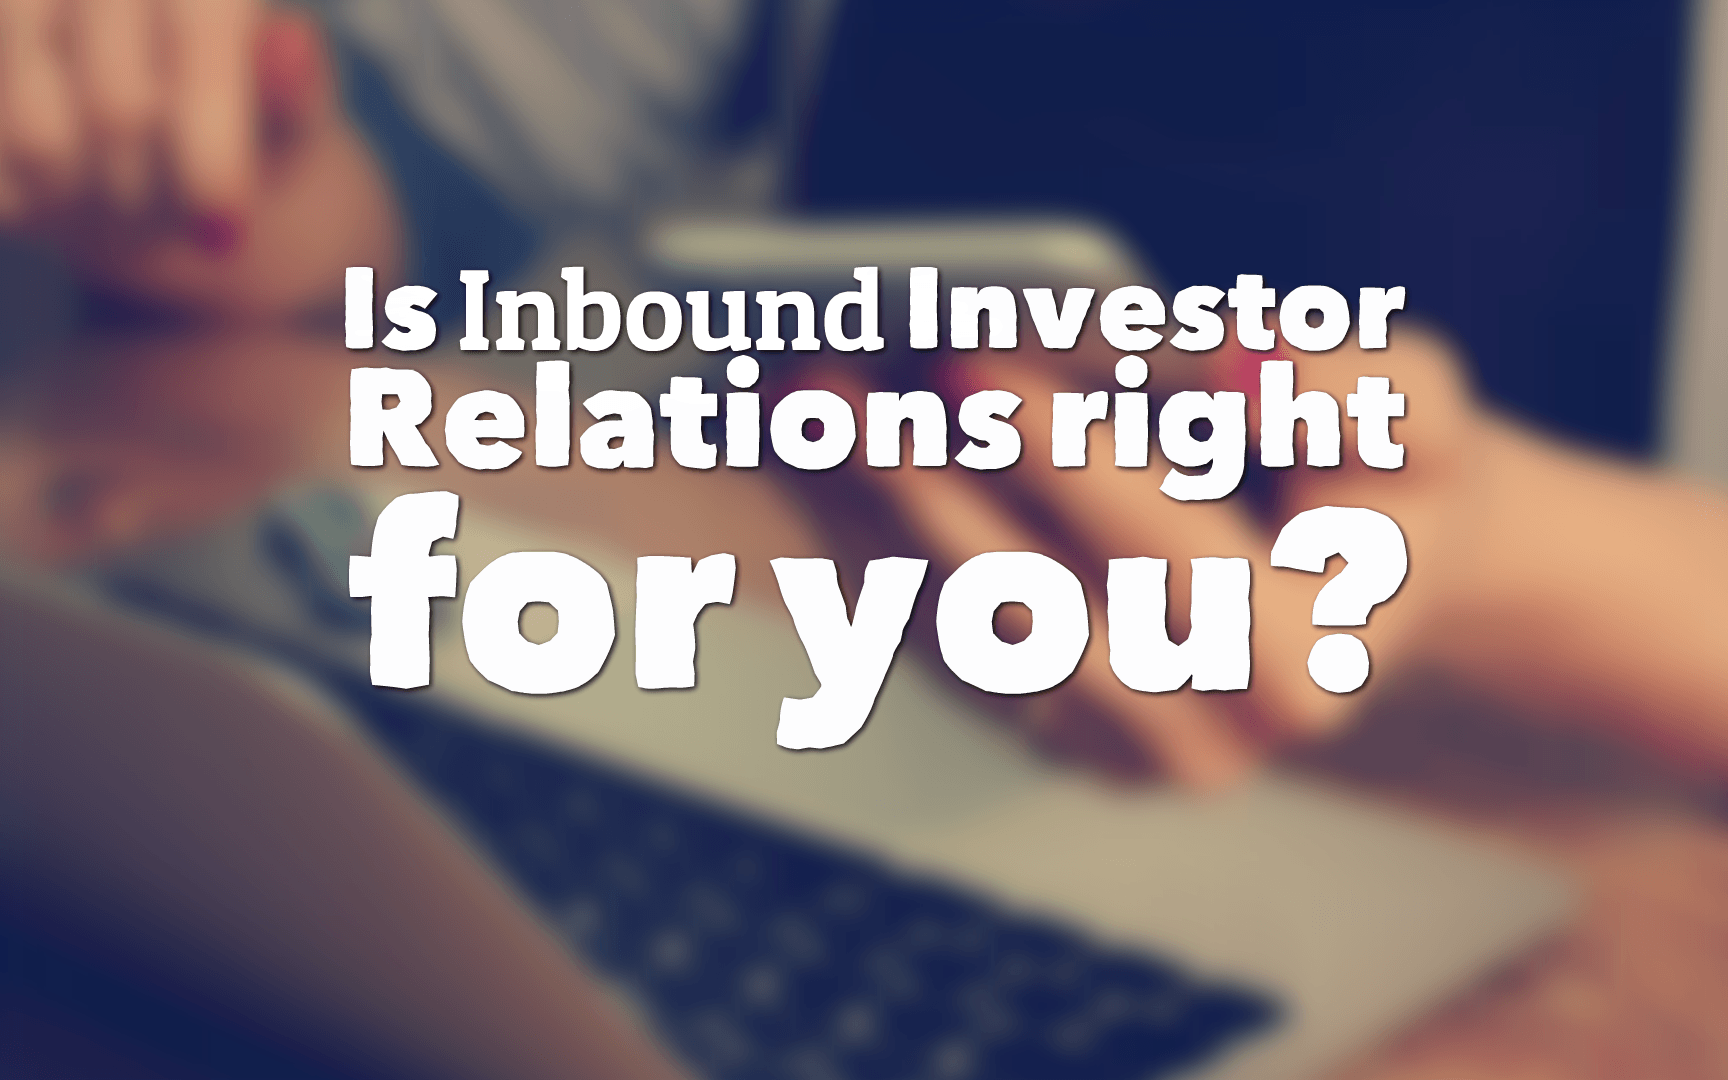 Is Inbound Investor Relations right for you